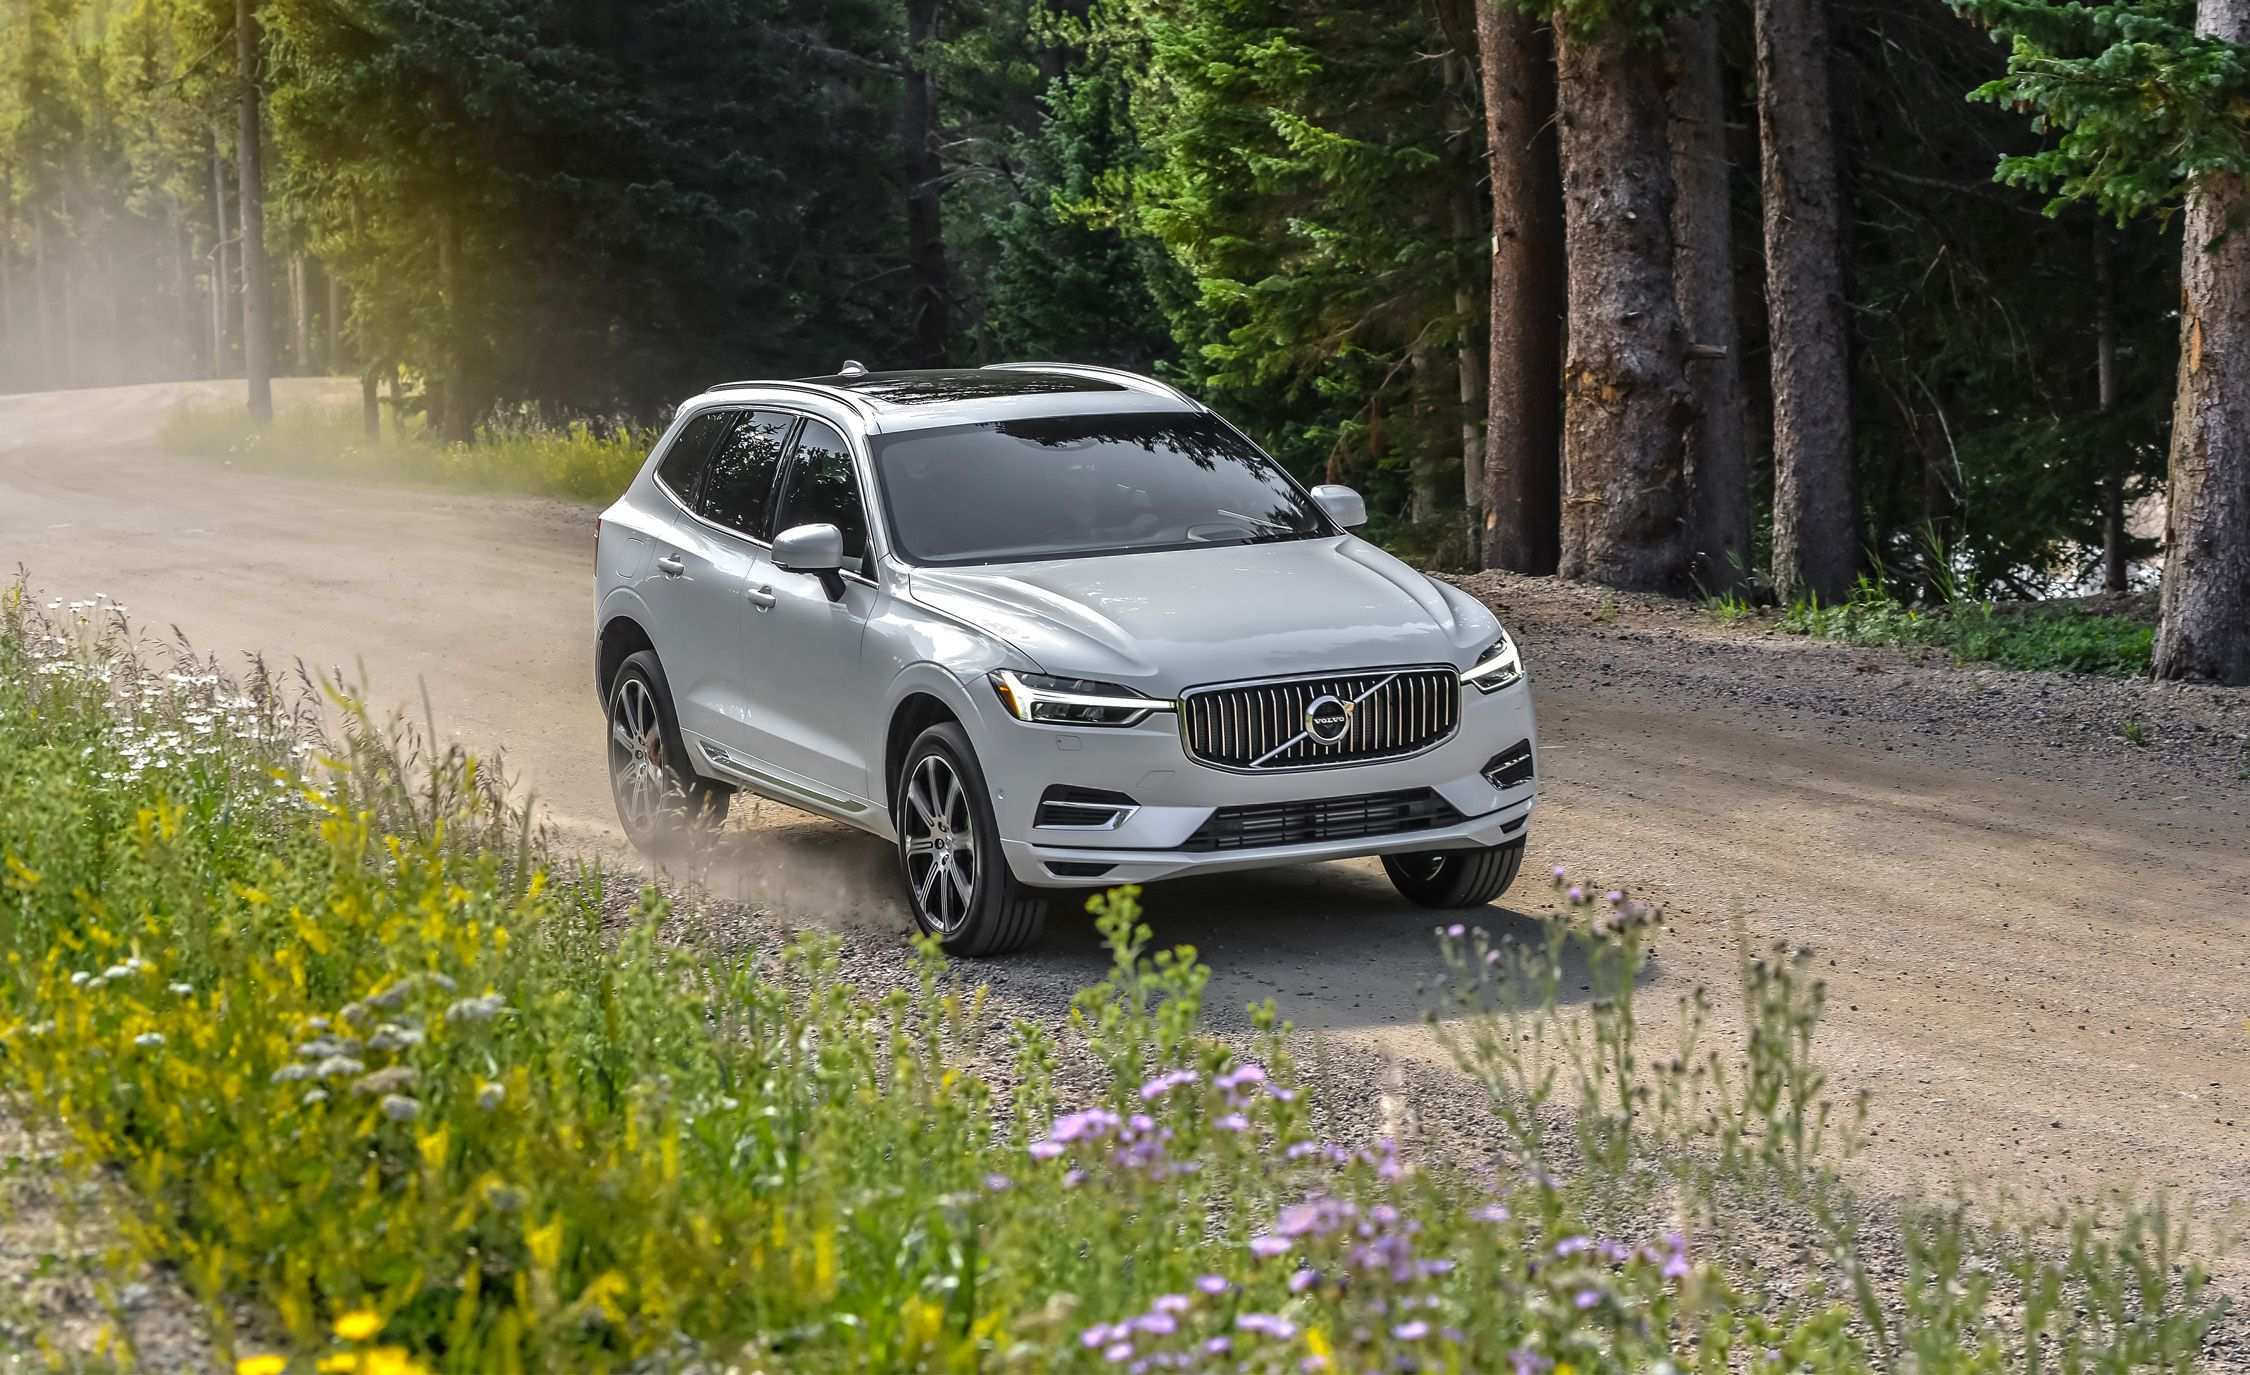 20 Best Review Best Hybrid Volvo 2019 First Drive Performance with Best Hybrid Volvo 2019 First Drive